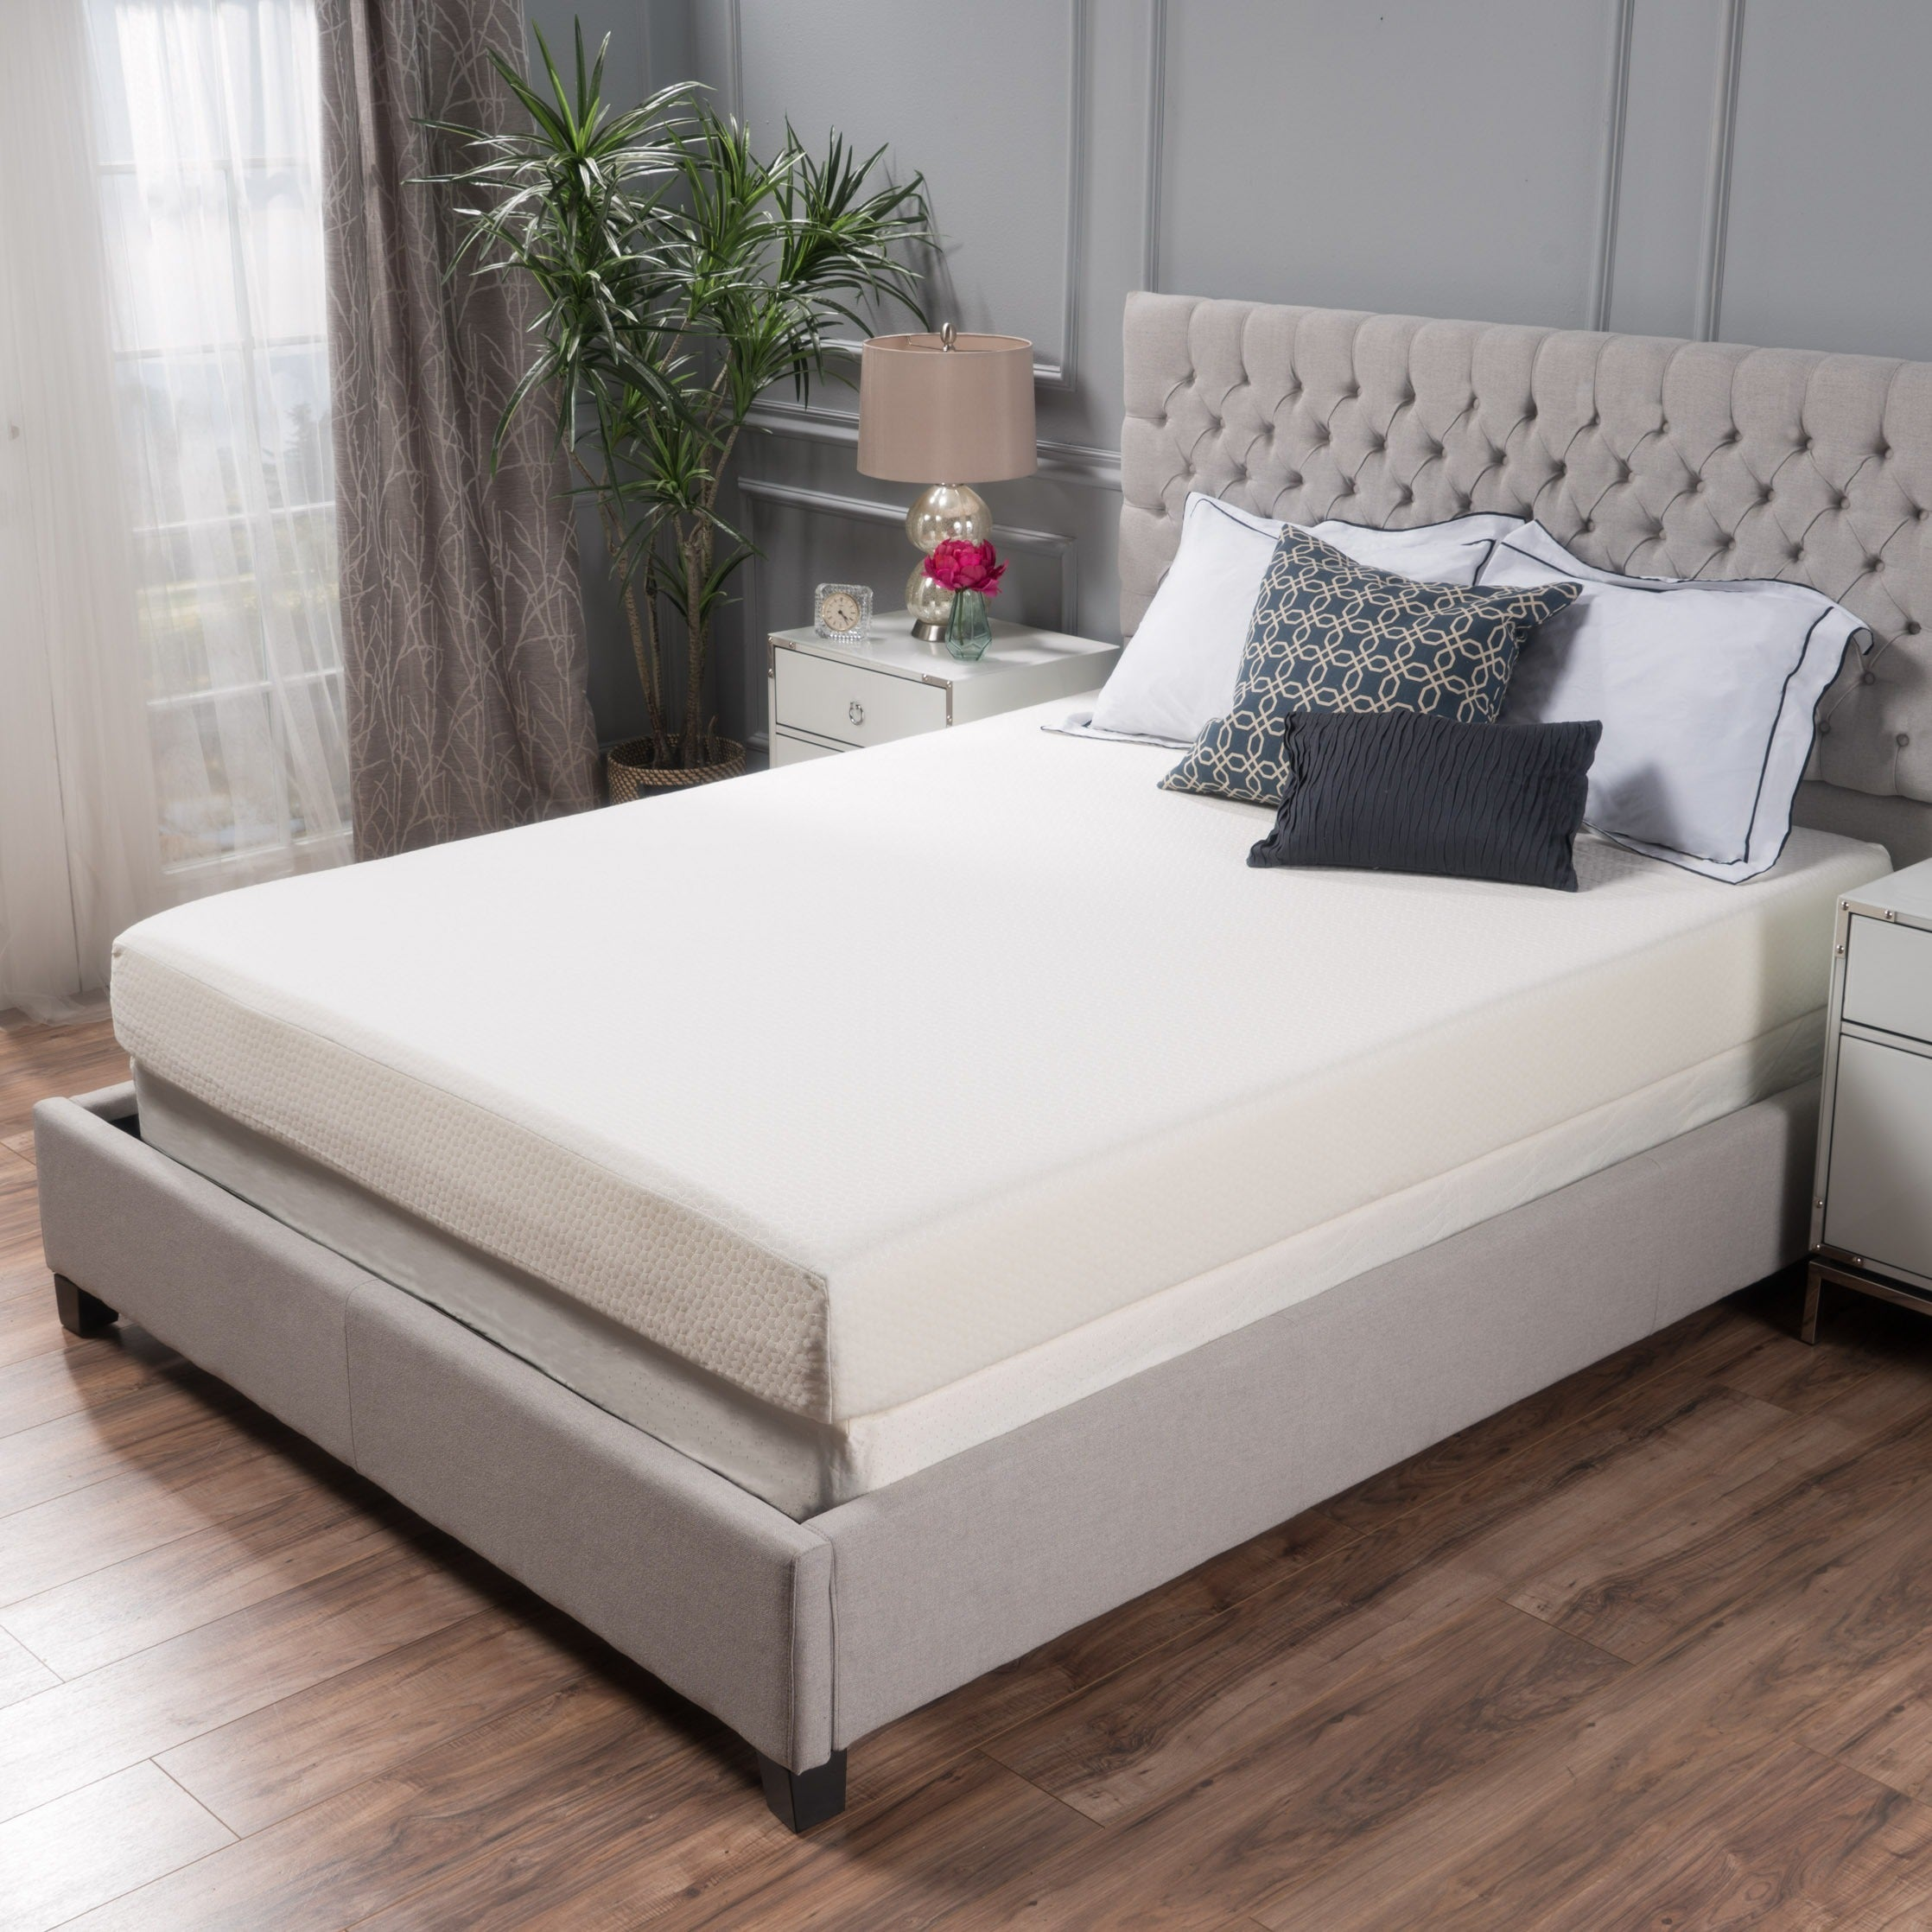 mattress awesome ideas queen of for sale icomfort pillow serta cheap size sets